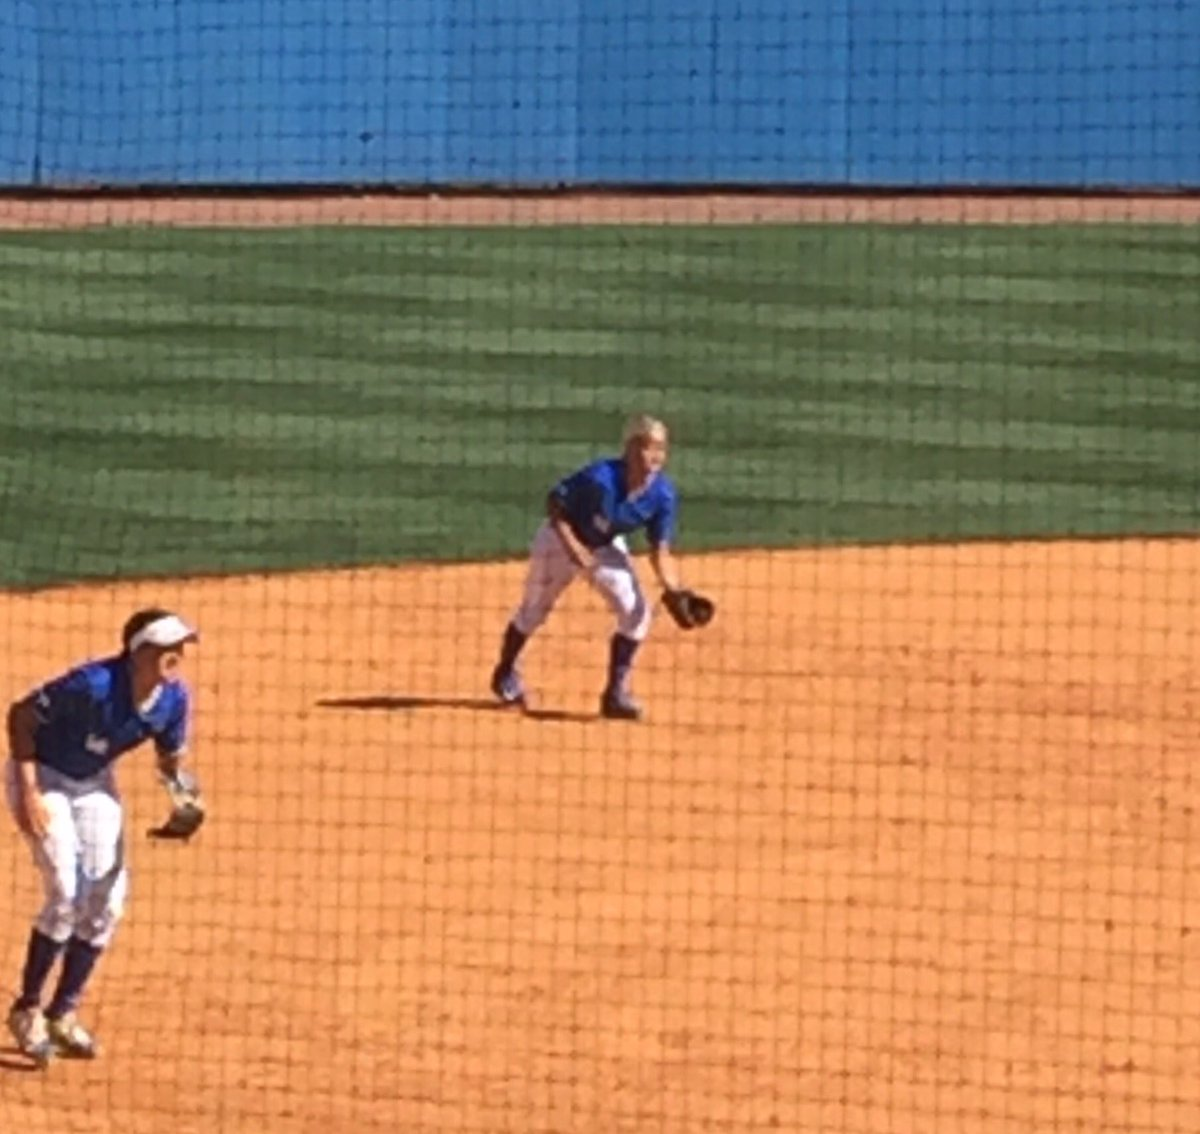 Former DCSB Lauren Johnson making her collegiate debut #Go Cats <br>http://pic.twitter.com/cReo9WK2LJ